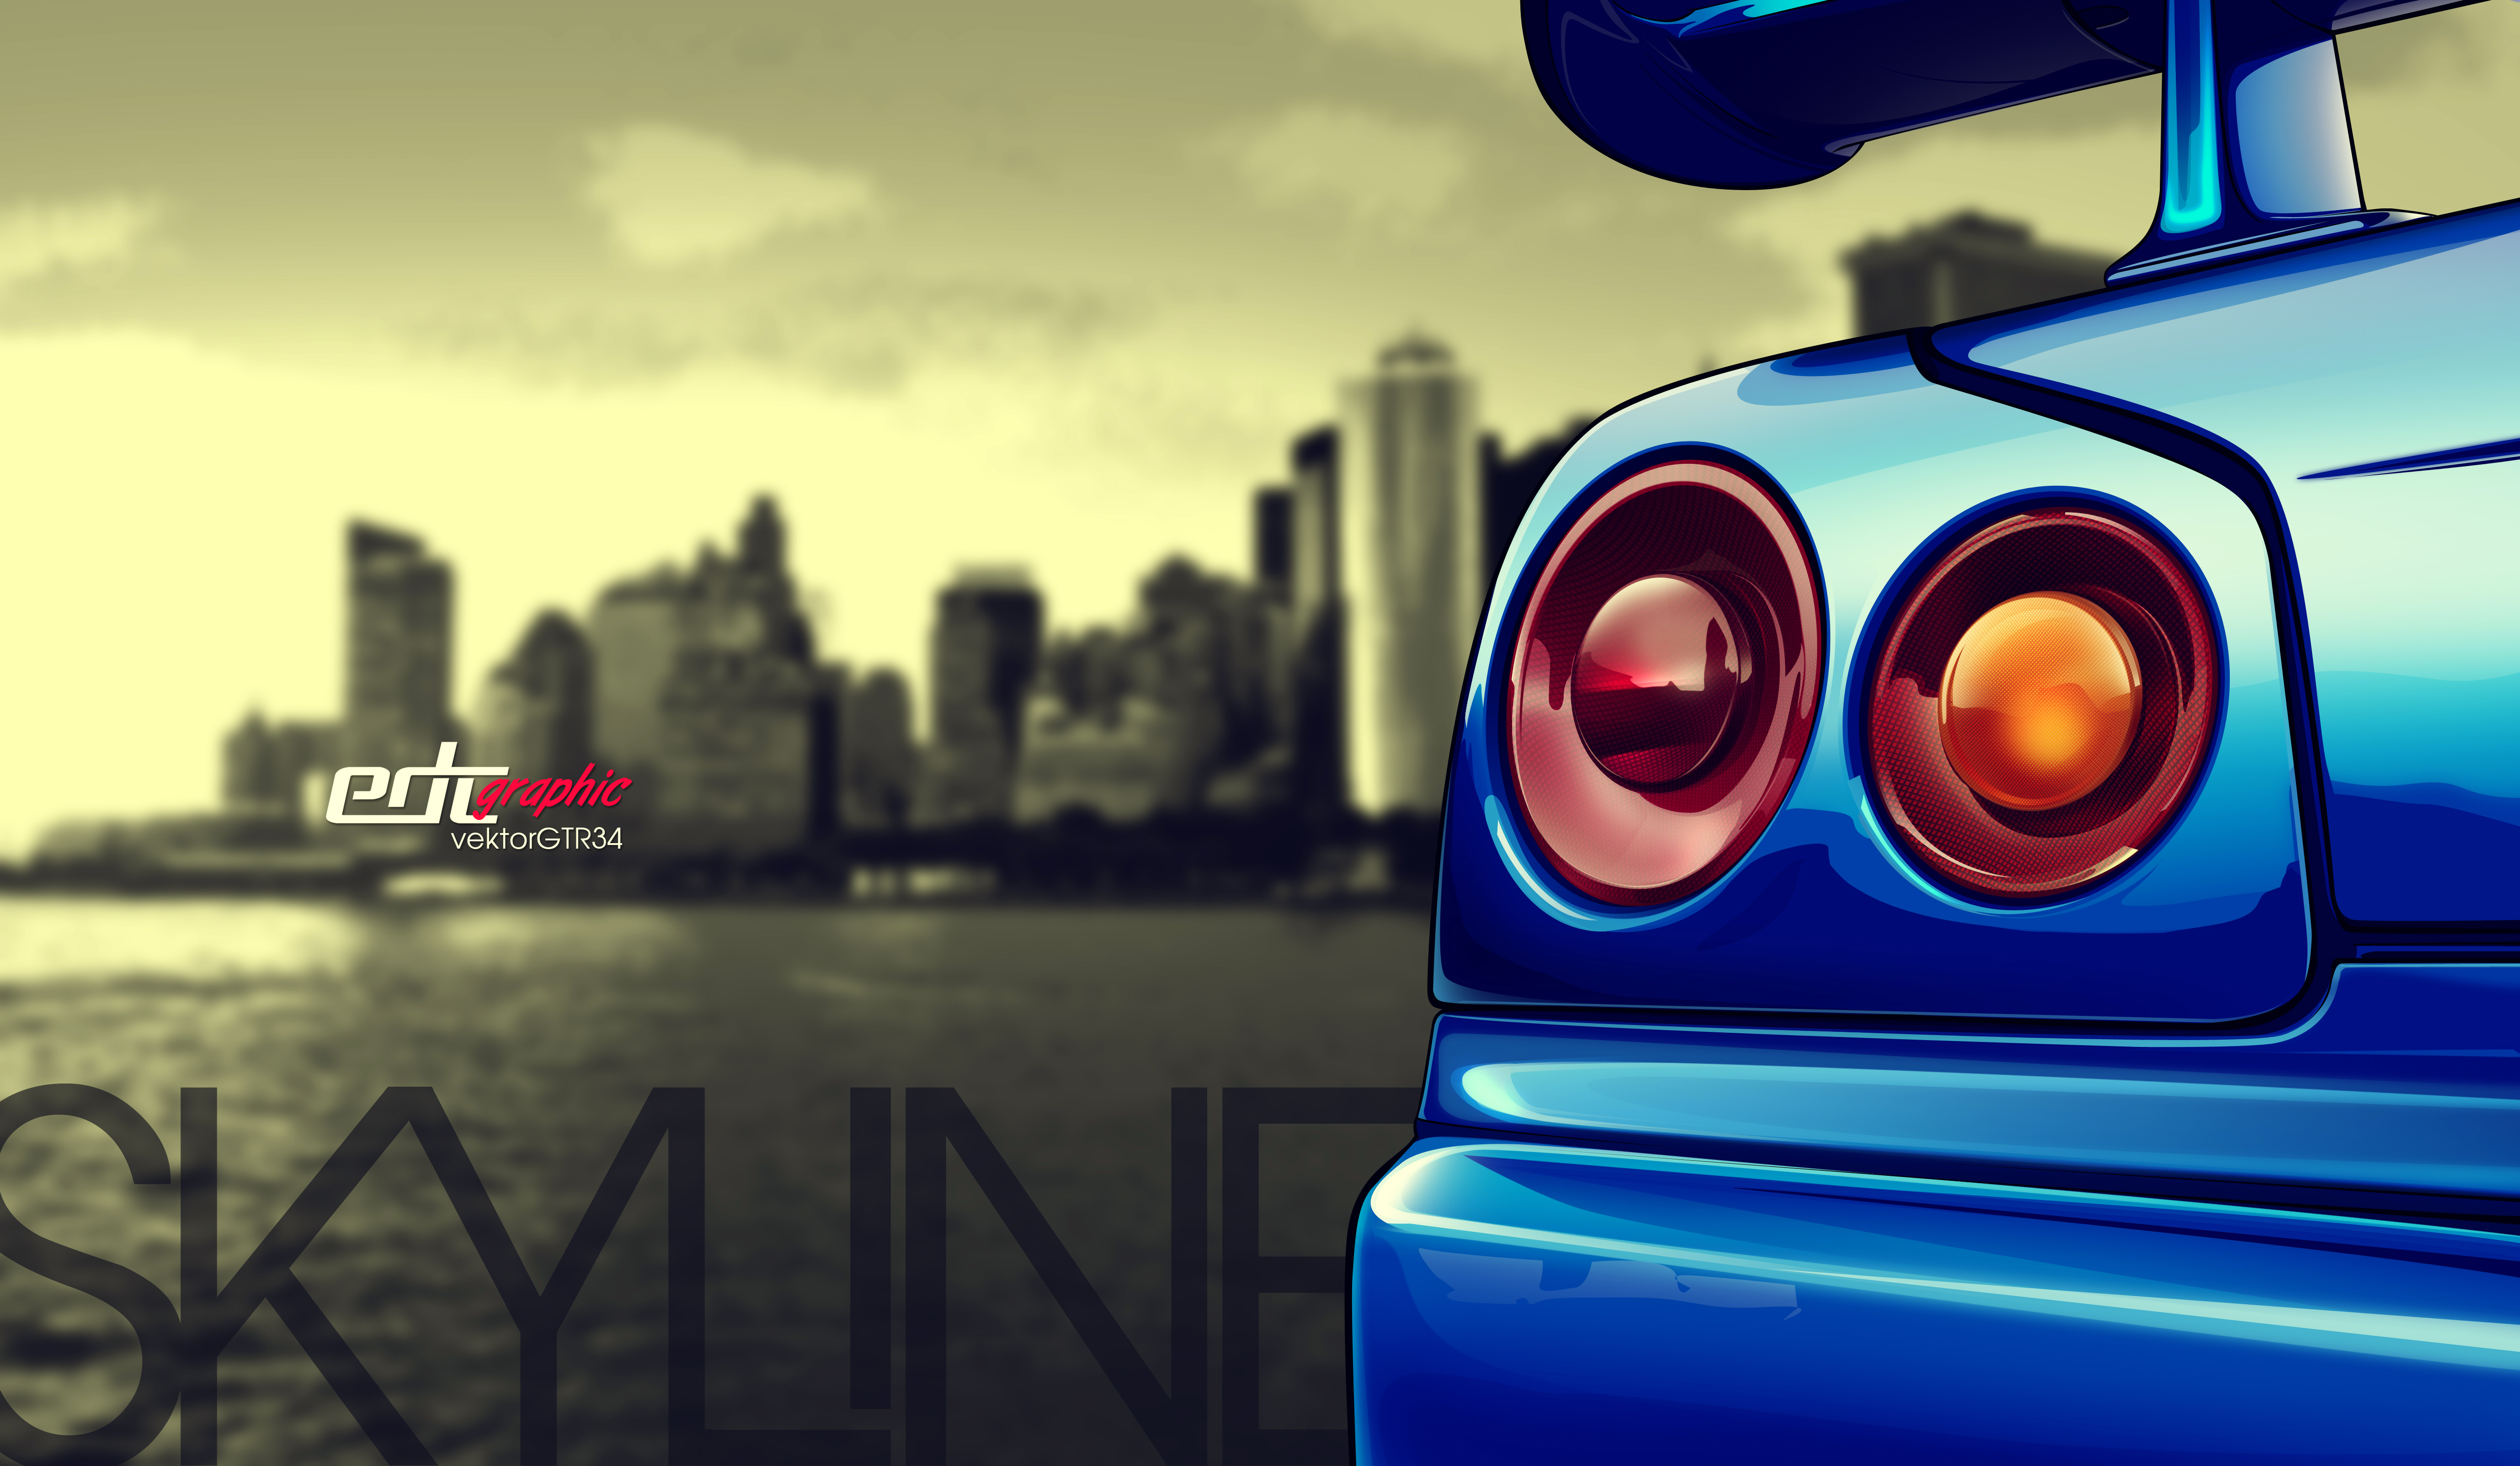 Nissan Skyline Gtr34 Vector Edc Graphic By Edcgraphic On